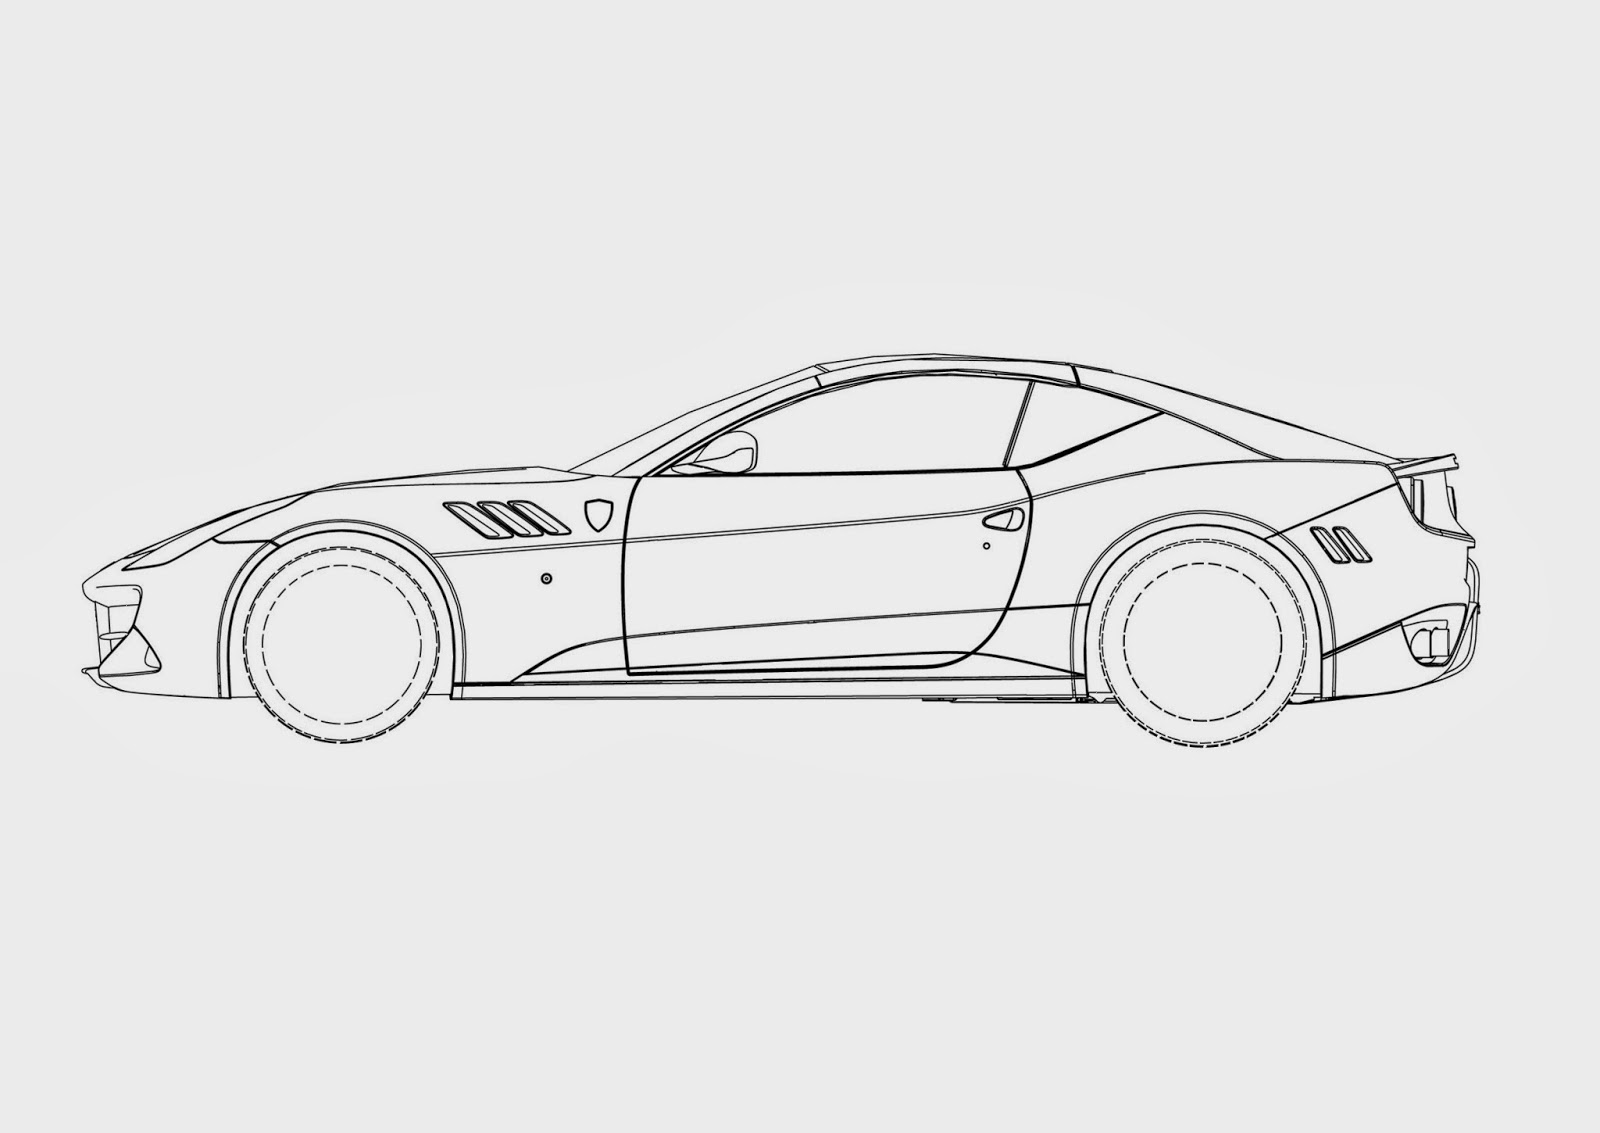 Brake Caliper Related Brake Caliper C 155 3821 3823 together with Inside The 2015 Mustangs 5 0l Coyote And 2 3l Ecoboost Engines moreover Ford M 38 furthermore How To Draw Hot Rod Cars furthermore Gt Sales. on 14 shelby super snake